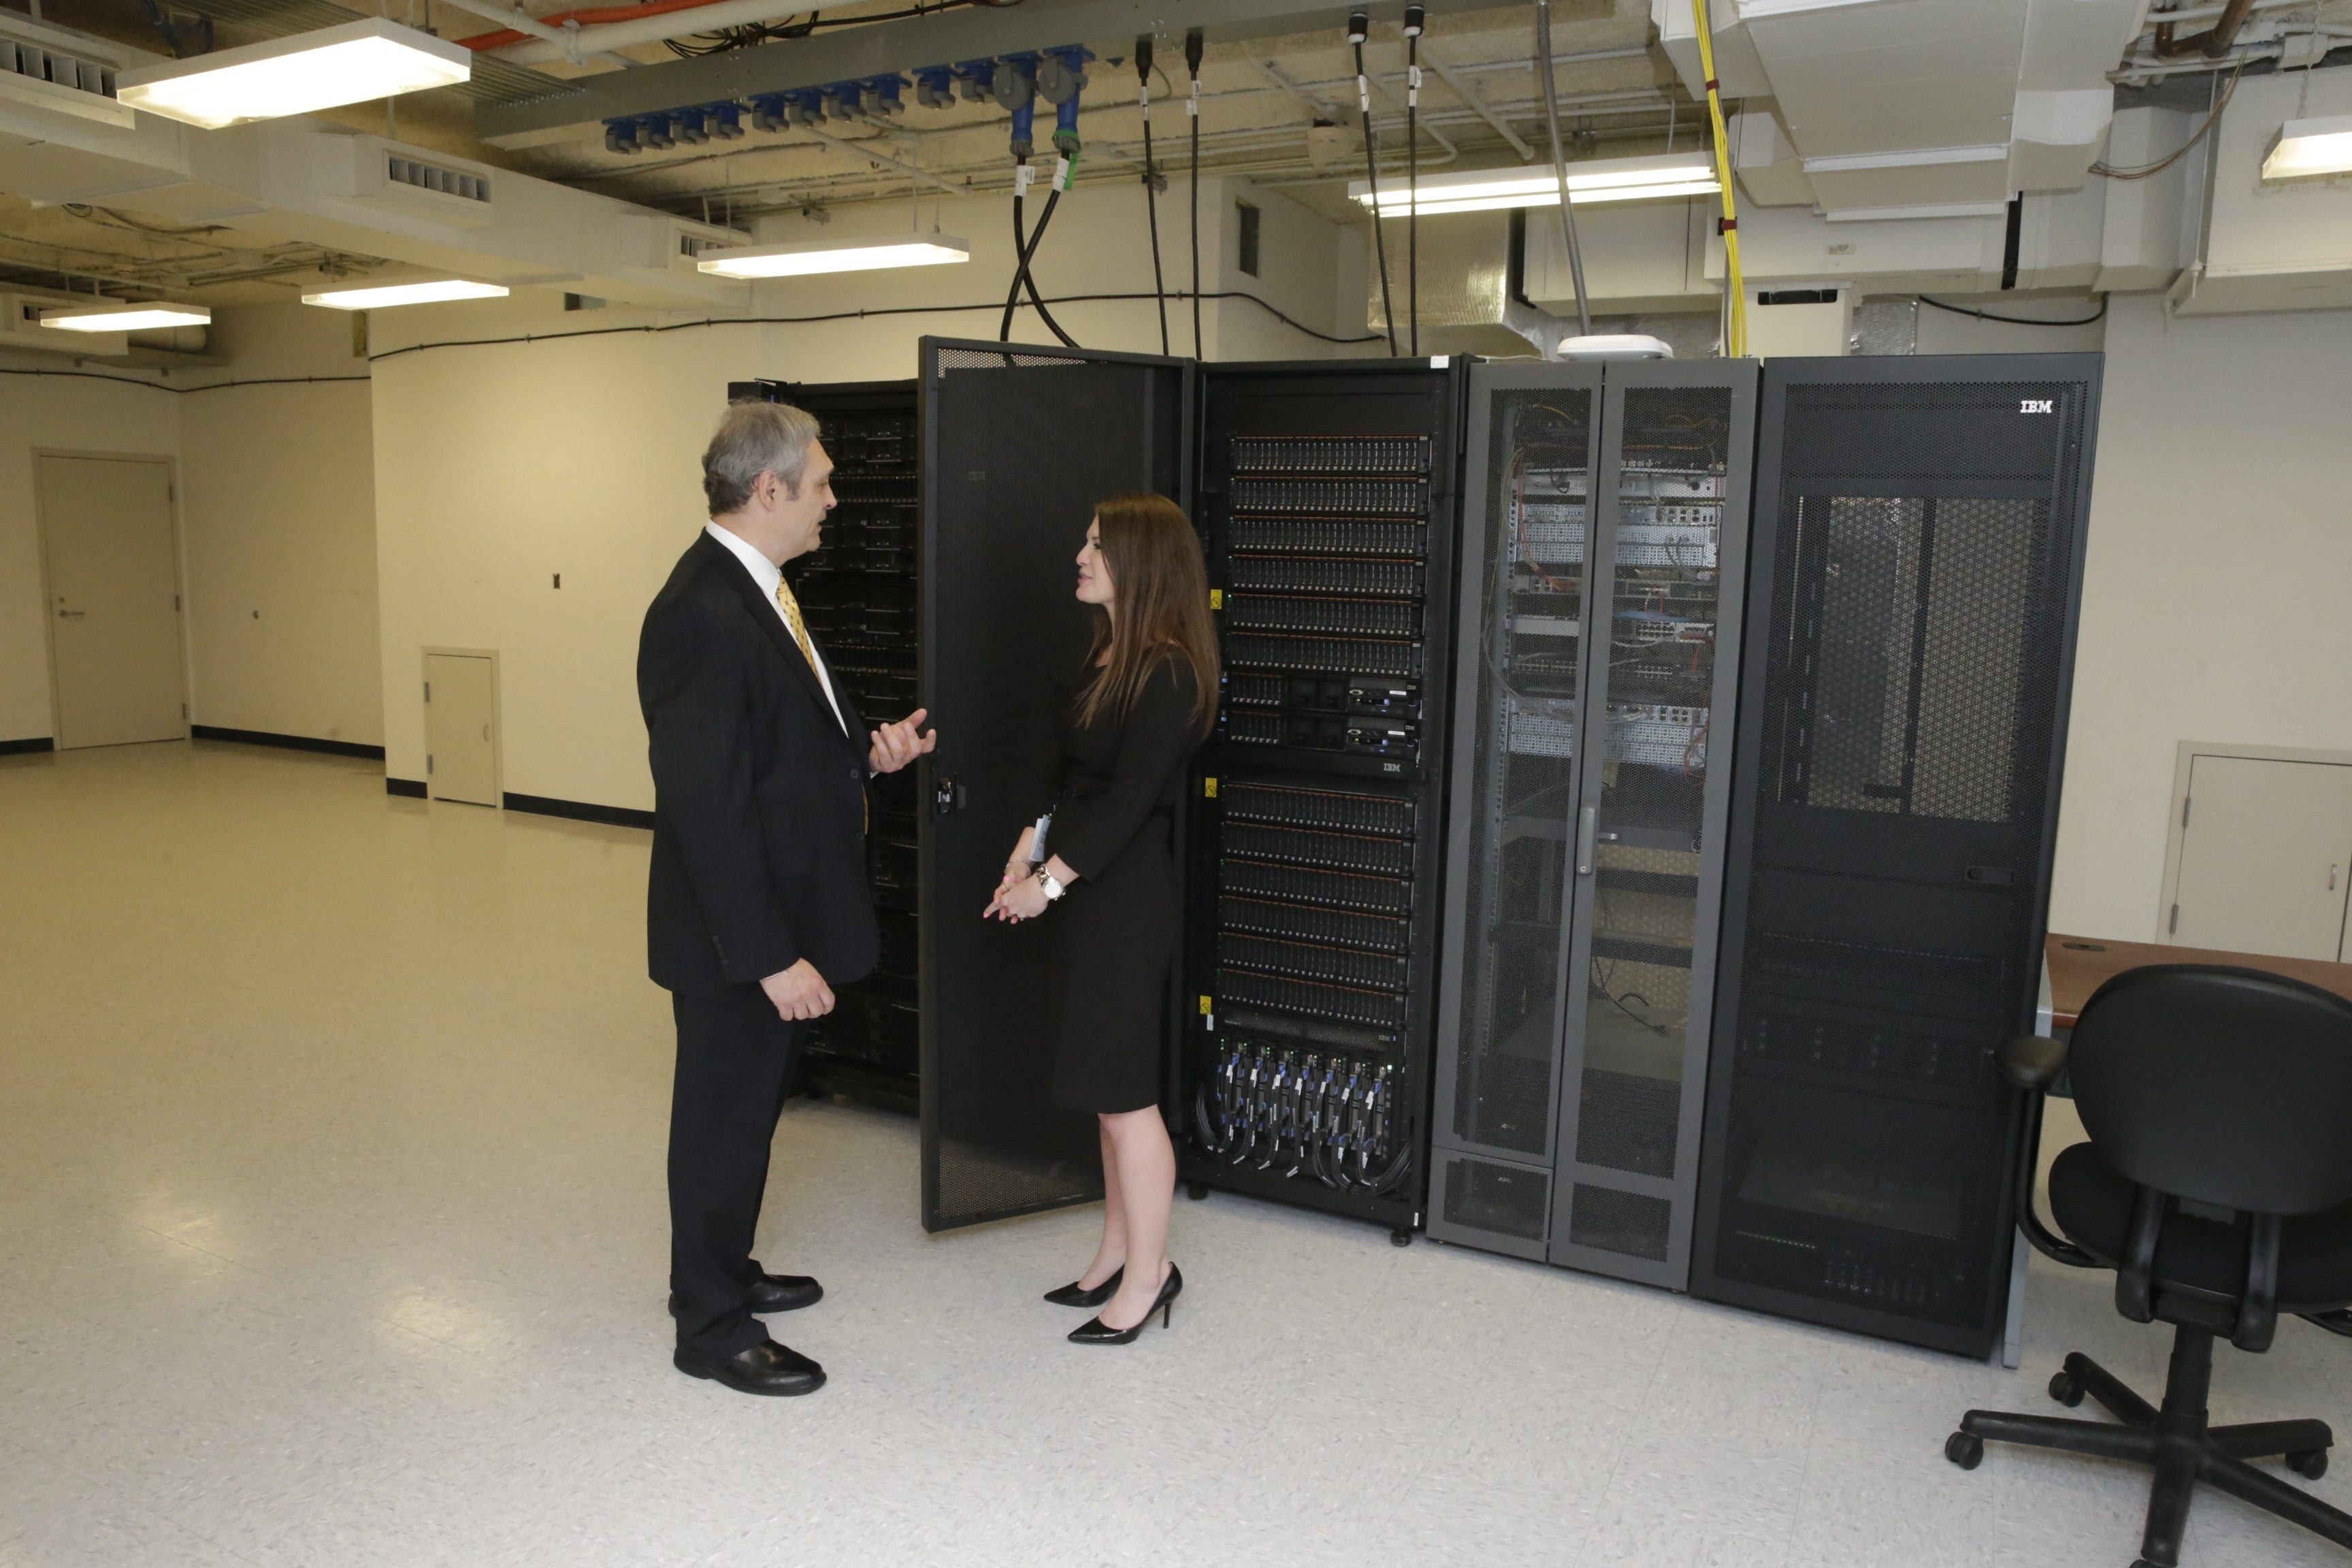 Frank Marzolini, operations executive, and Beth Stubbe, talent development lead, show off the server room at KeyCenter on Friday.  IBM expects to hire people with skills in building computing solutions.